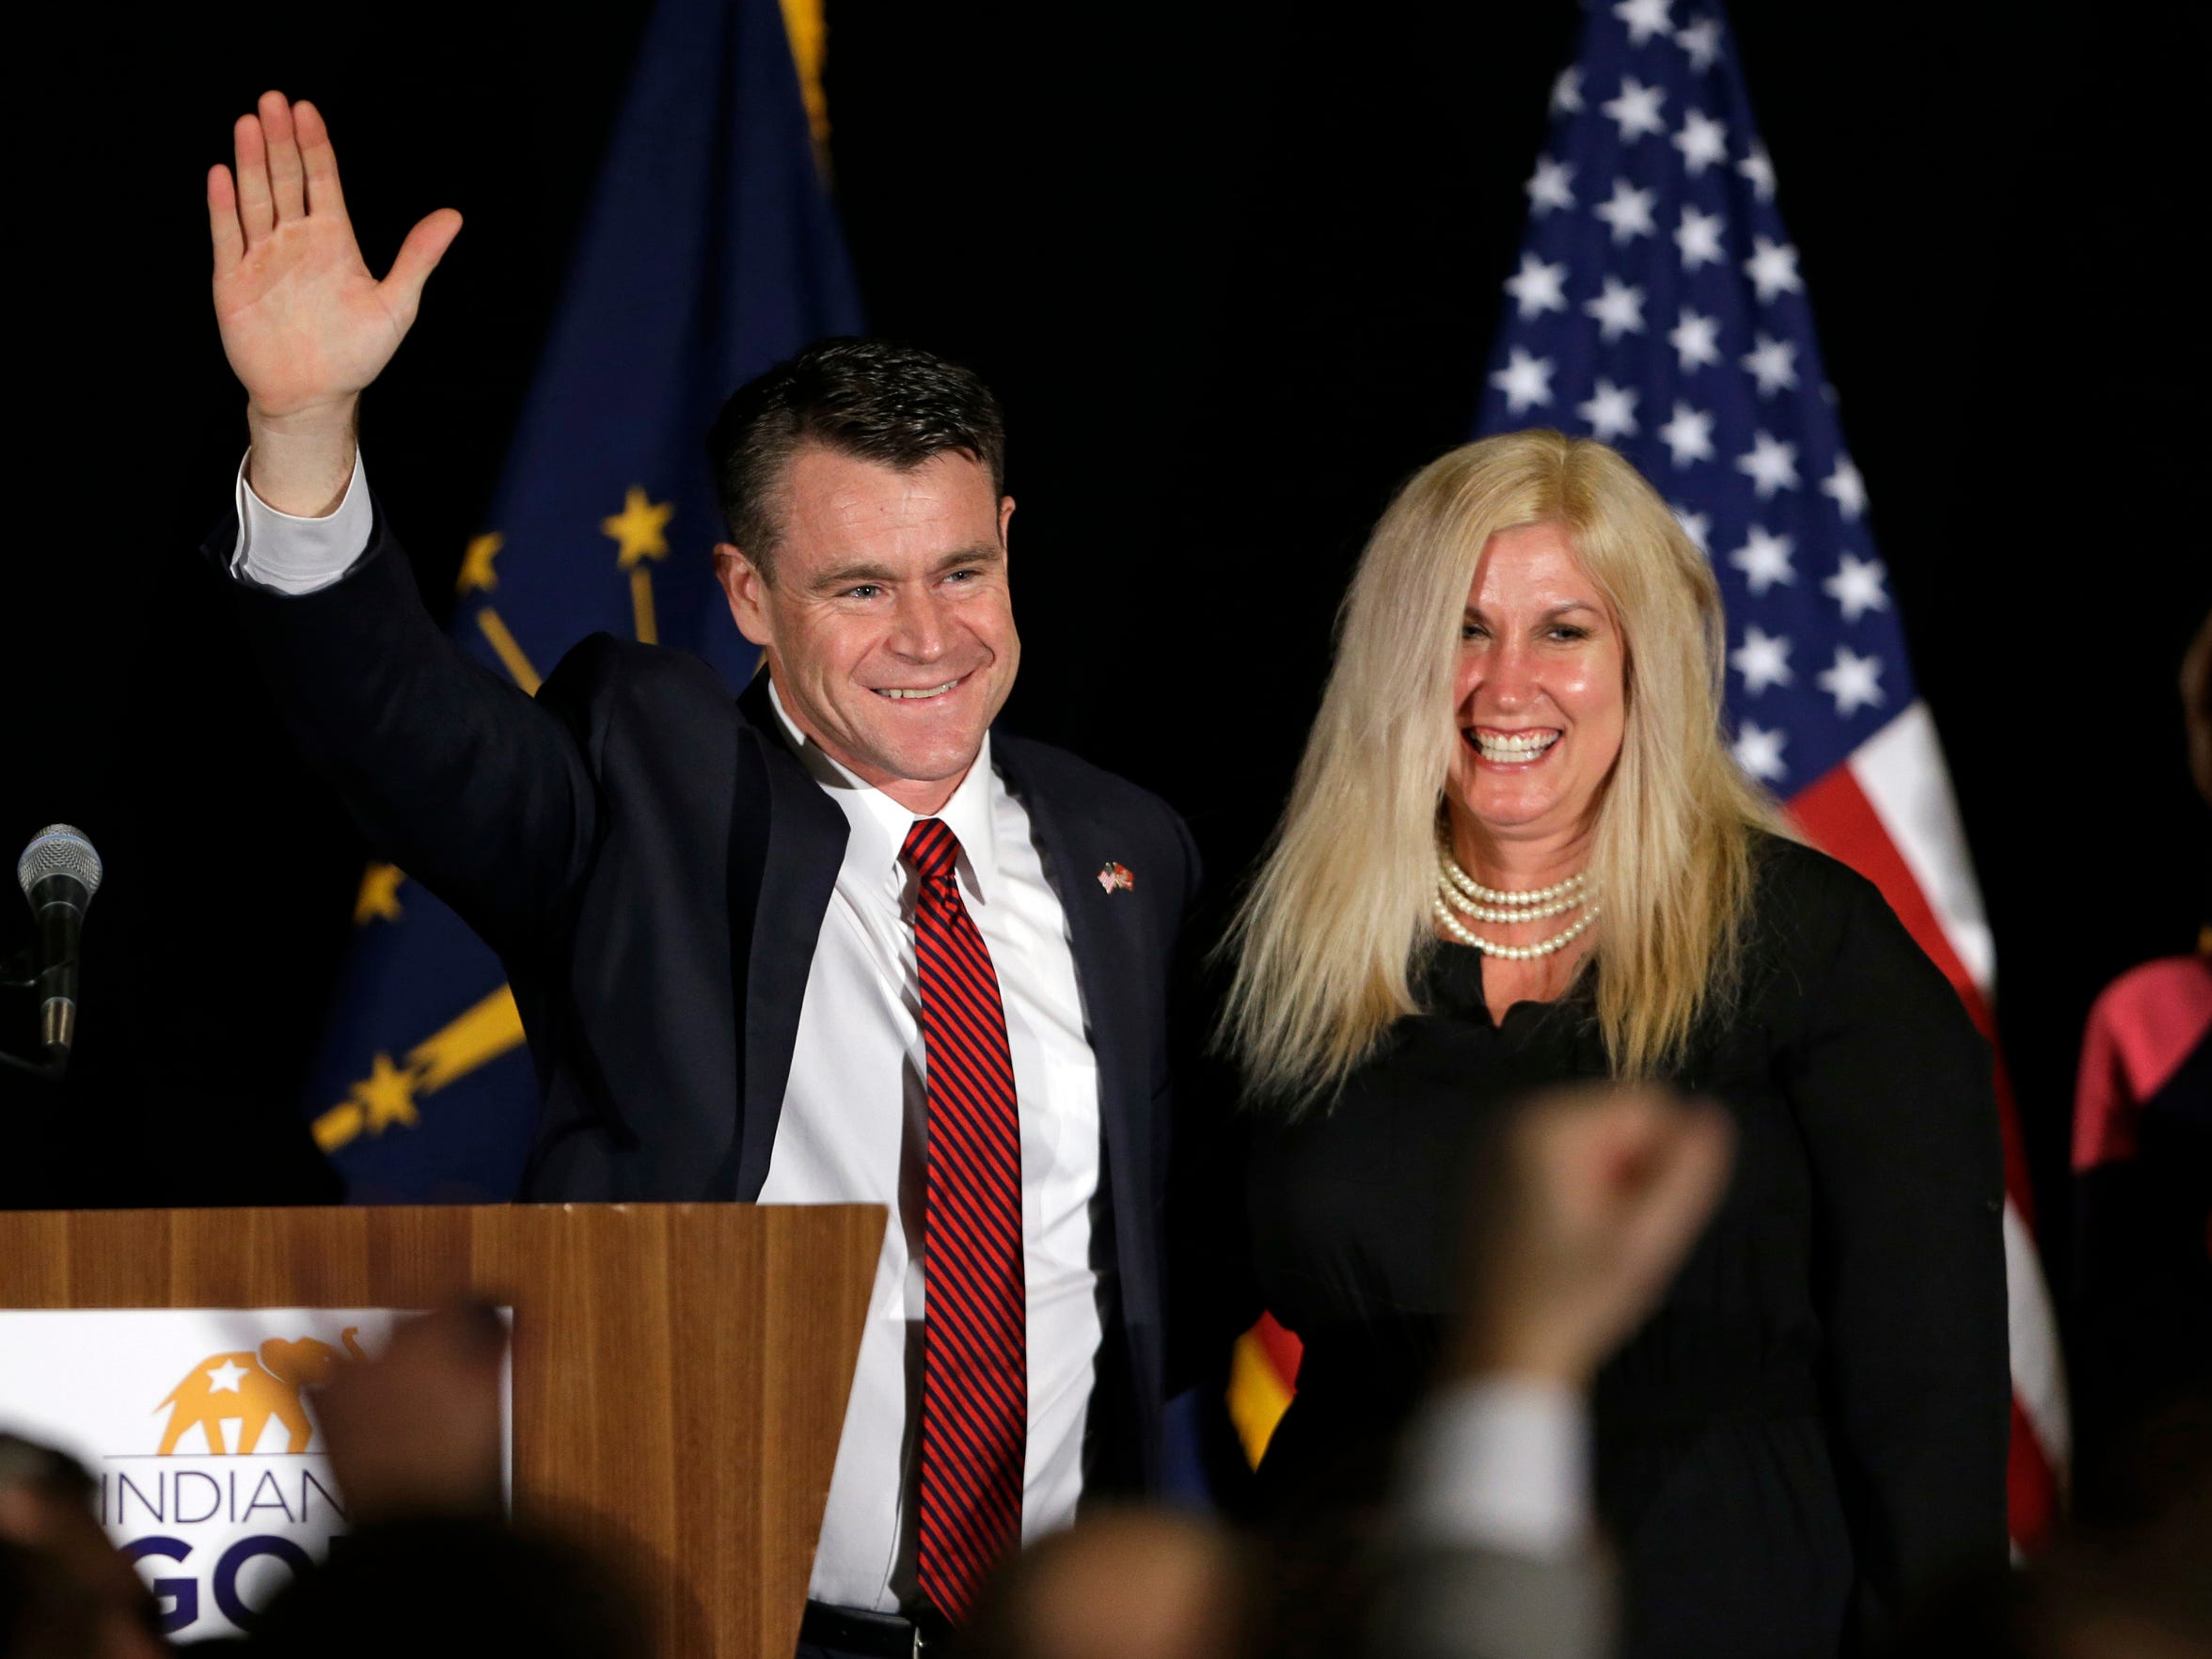 Todd Young, accompanied by his wife, Jenny, celebrates